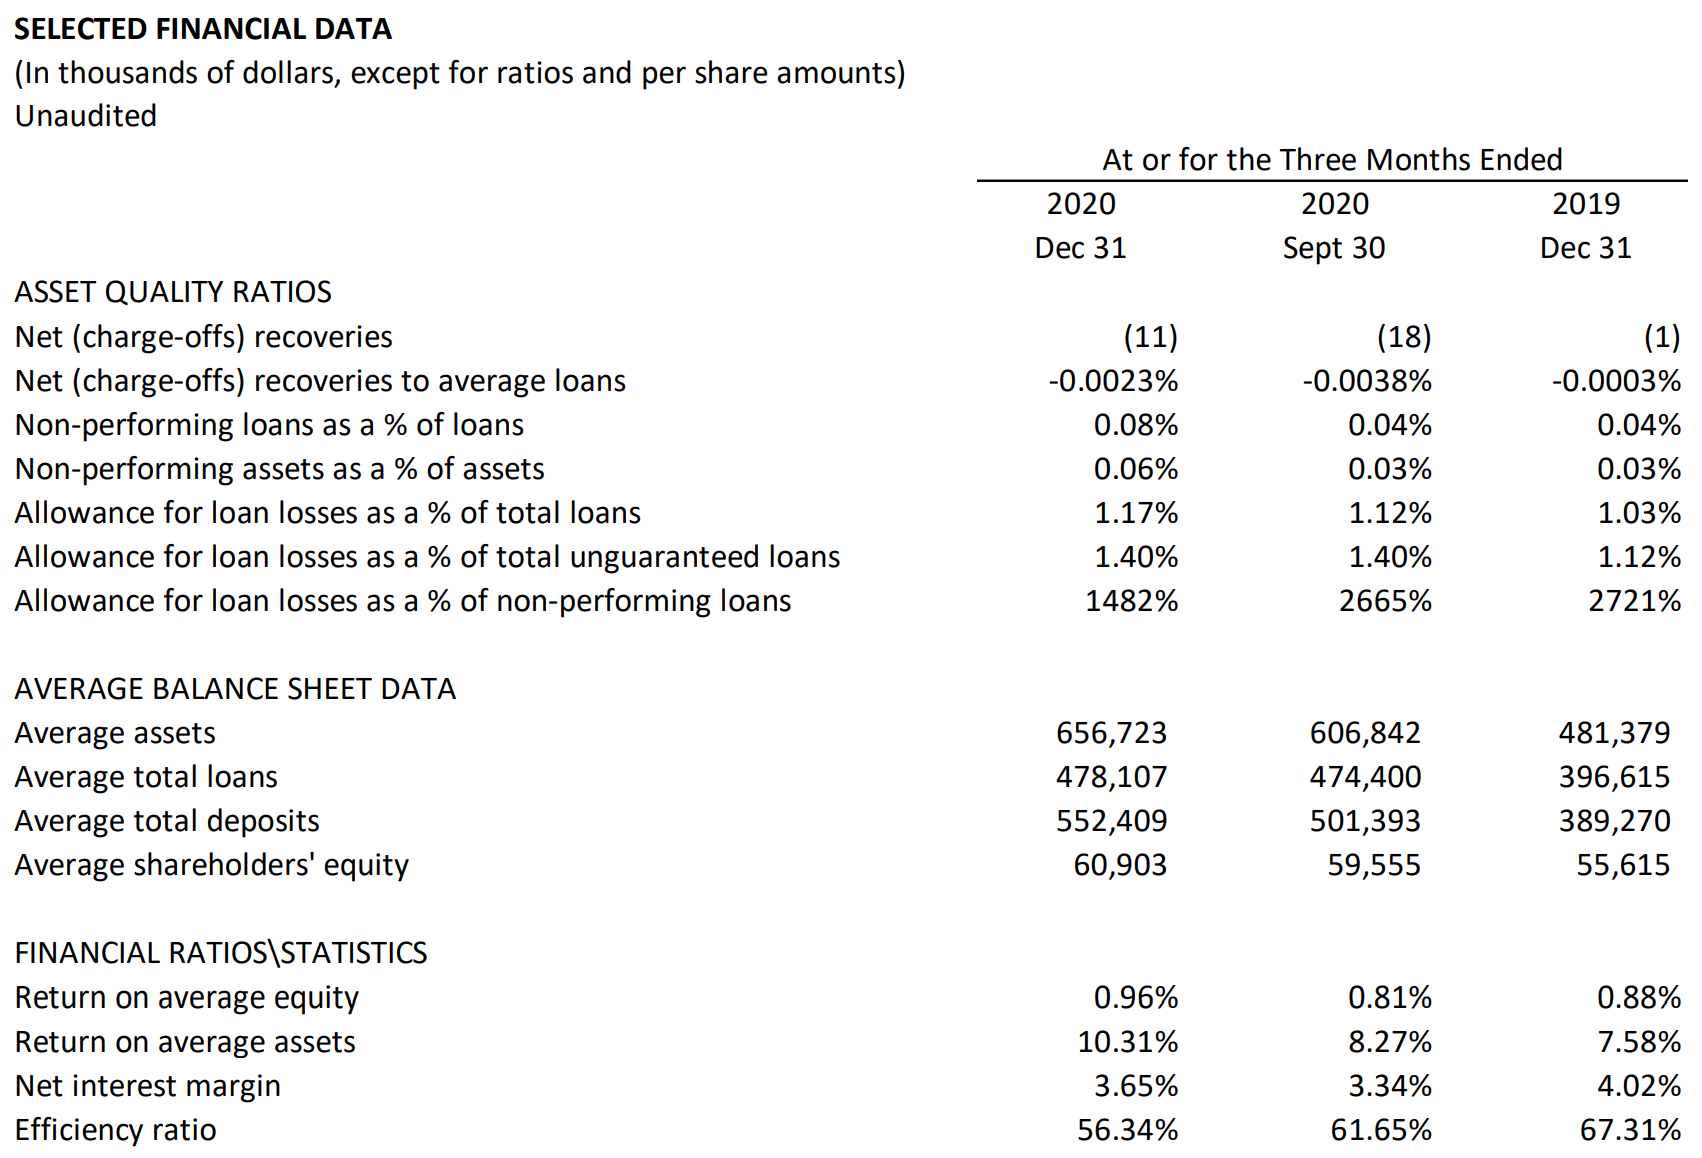 SELECTED FINANCIAL DATA Table